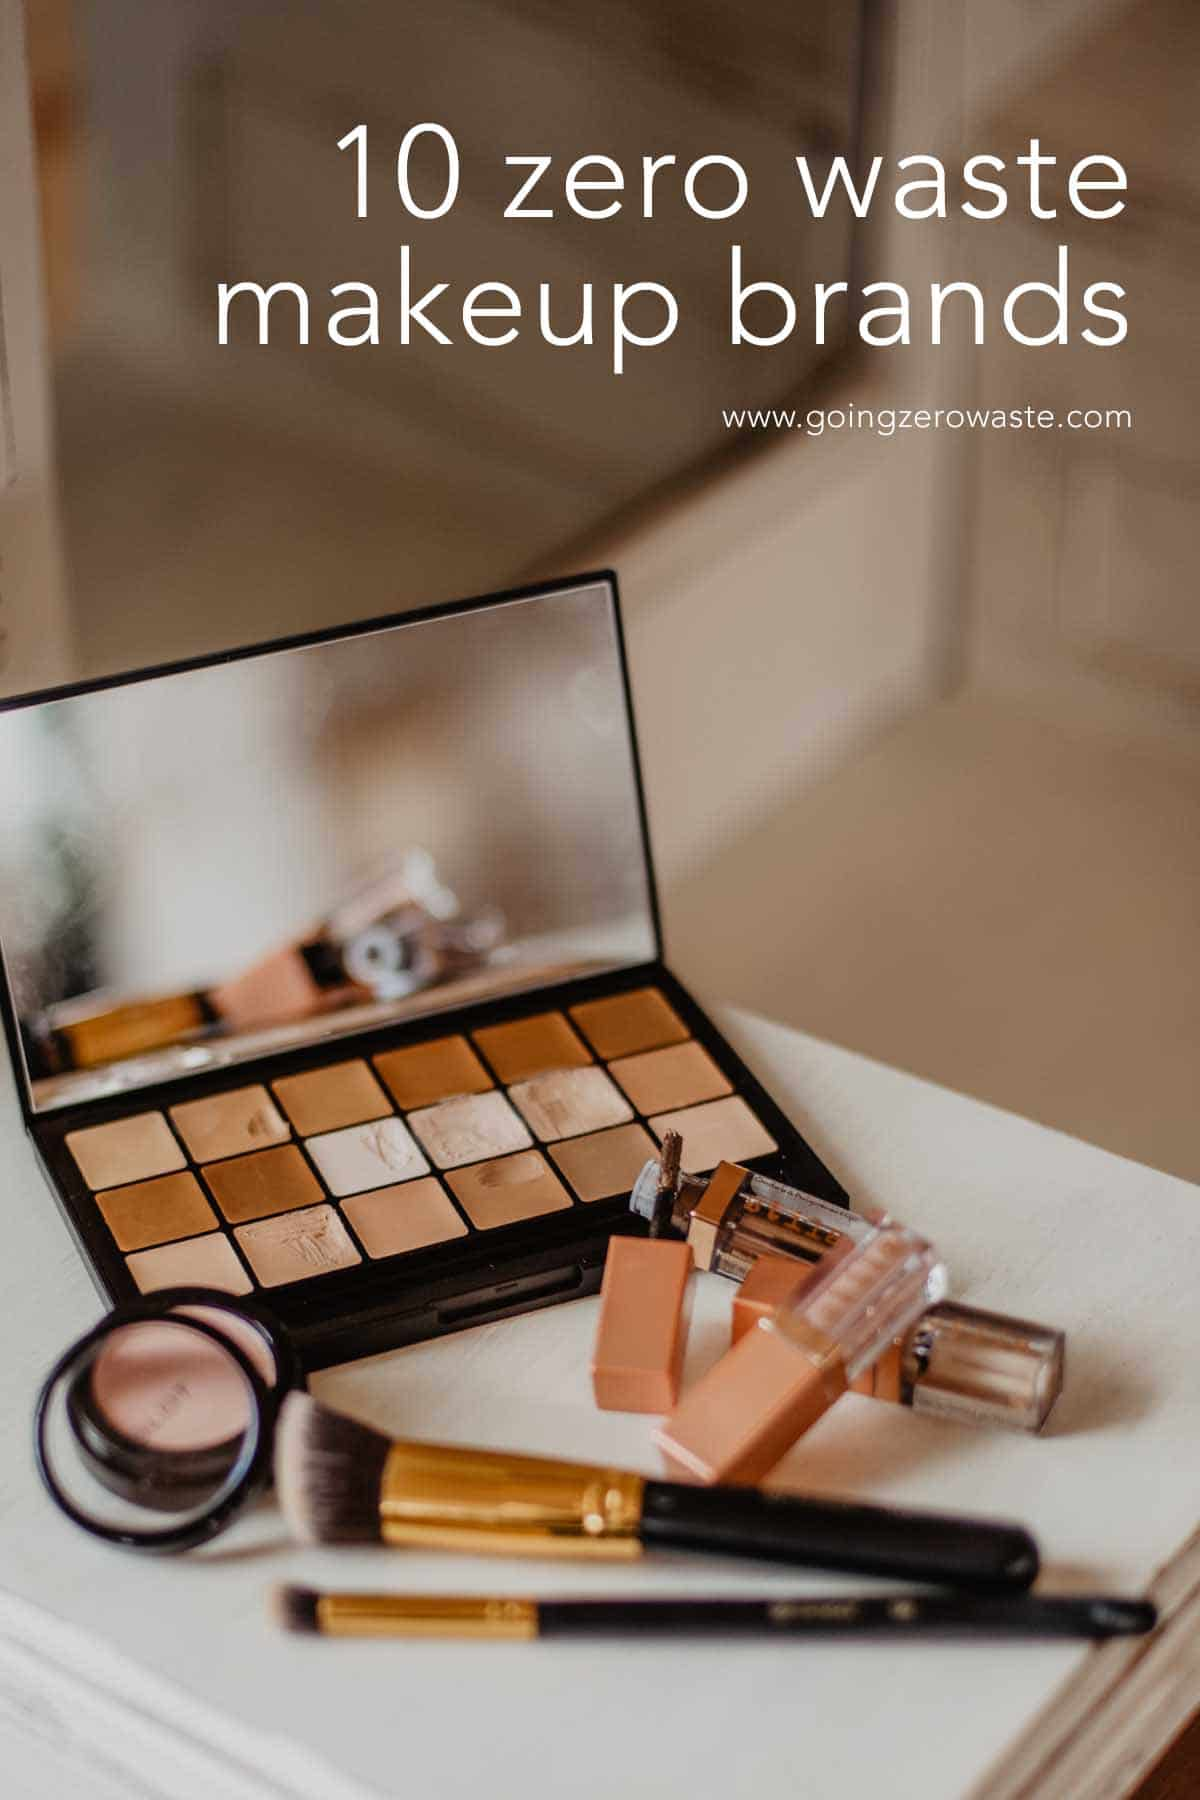 10 Zero Waste Makeup Brands from www.goingzerowaste.com #zerowaste #ecofriendly #gogreen #sustainable #makeup #zerowastemakeup #sustainablemakeup #ecofriendlymakeup #greenmakeup #organic